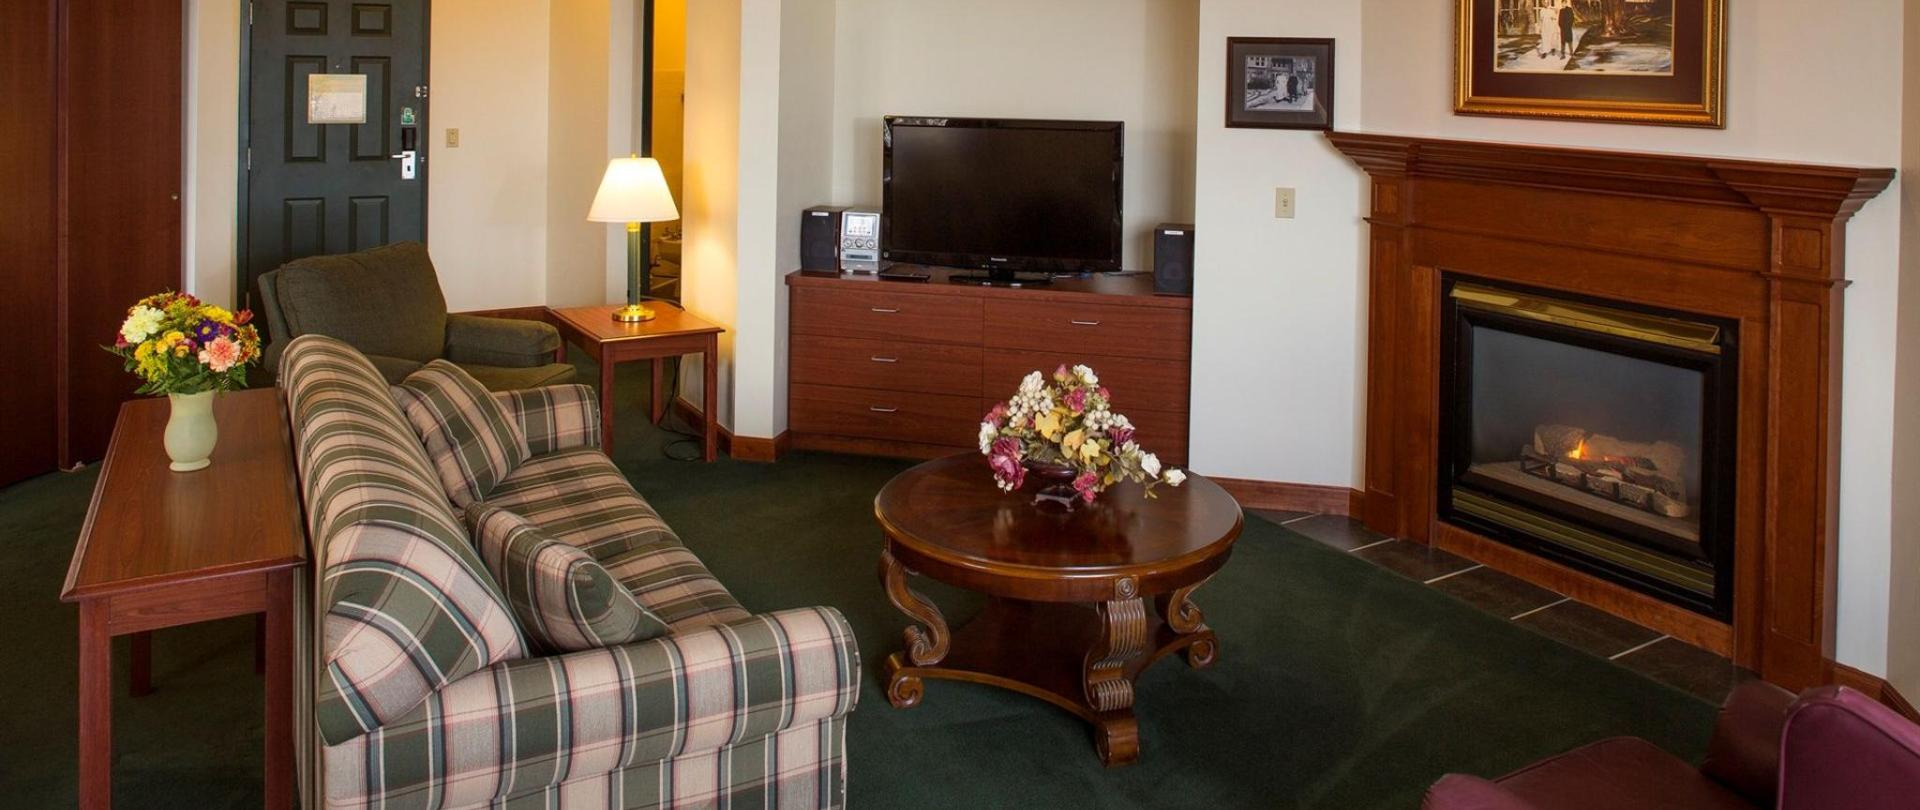 presidential-suite-living-room.jpg